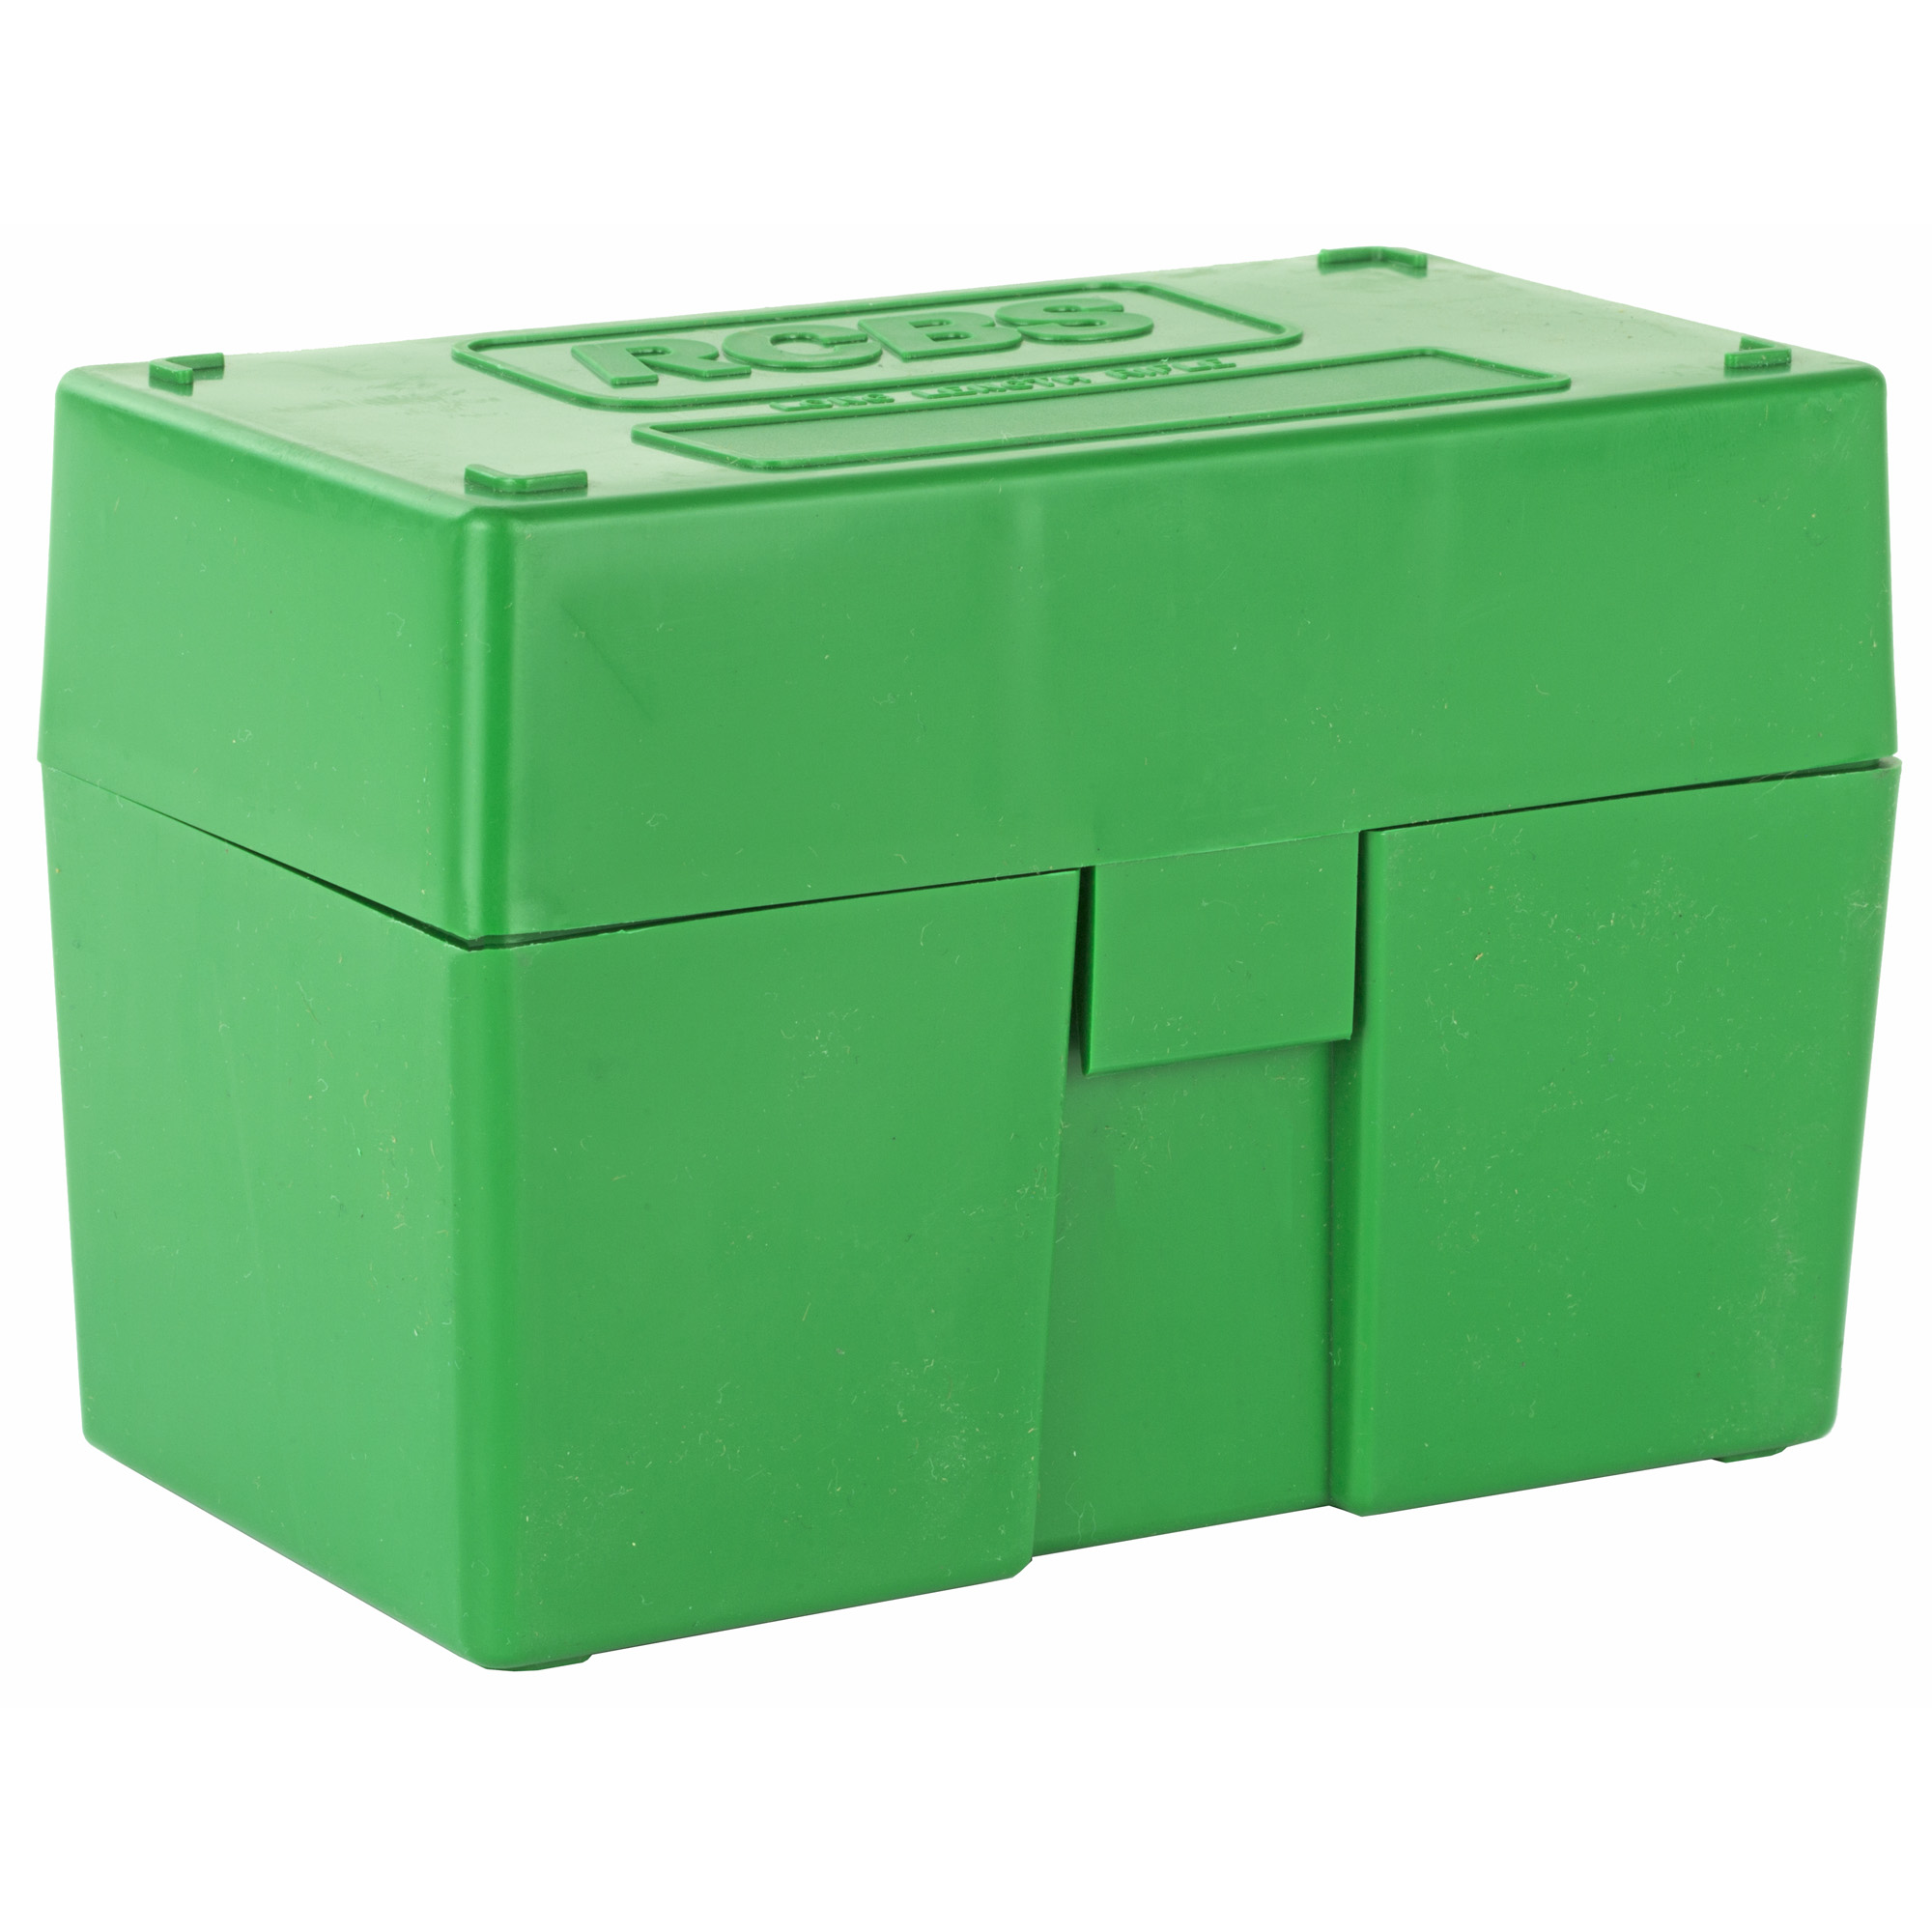 Rcbs Ammo Box Large Rifle Green